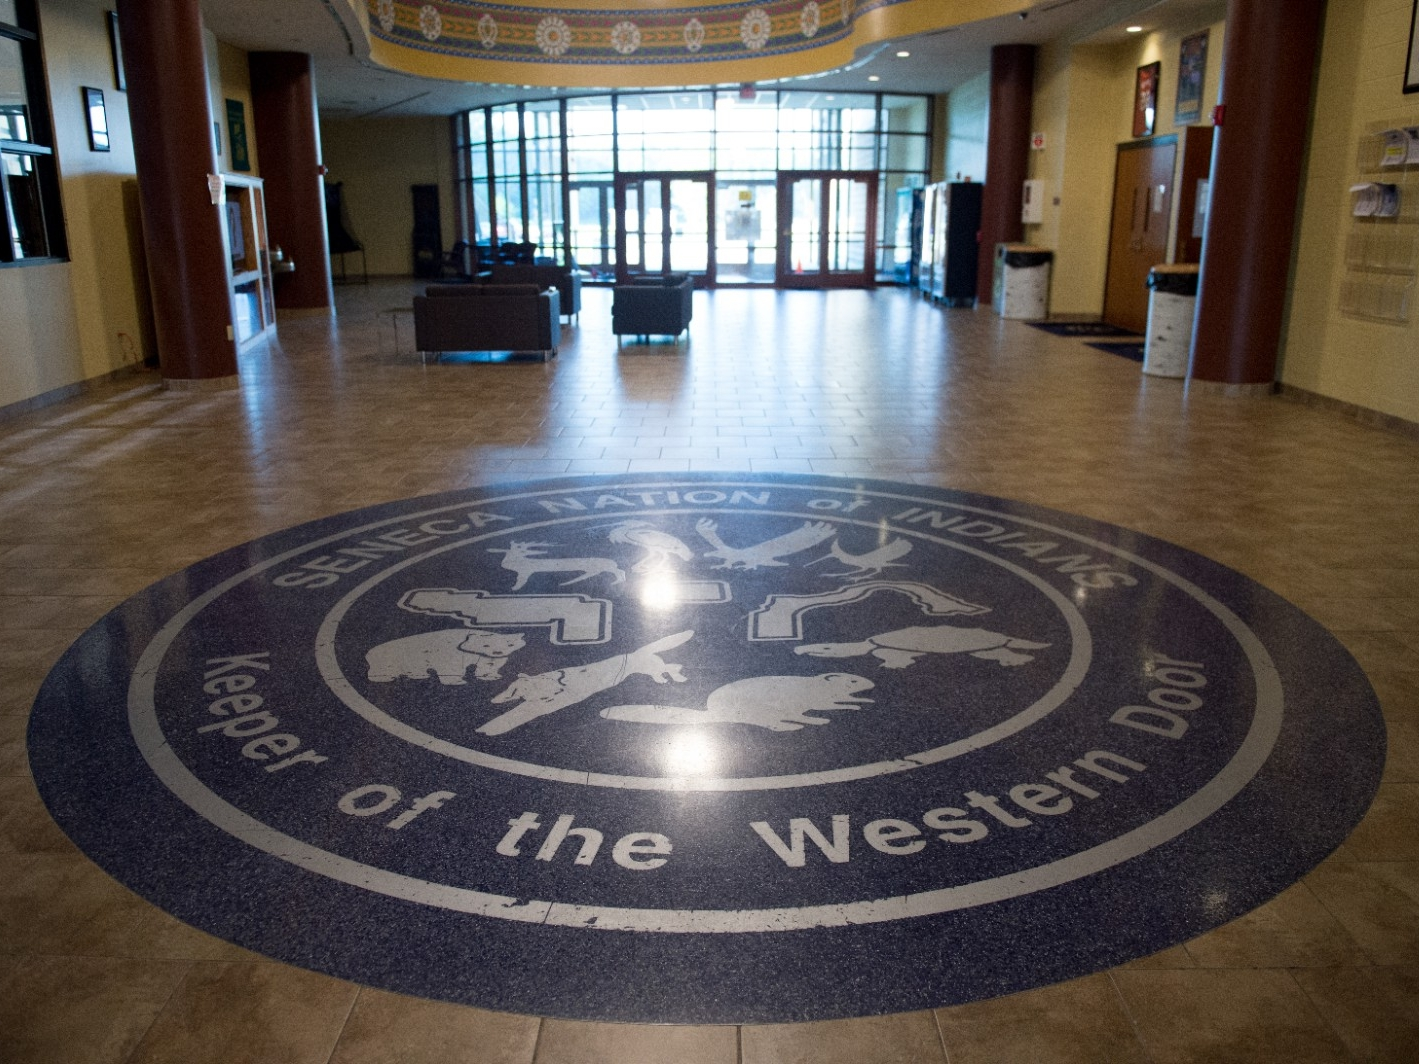 A floor decoration depicts the eight clans of the Seneca Nation at the Cattaraugus Community Center.